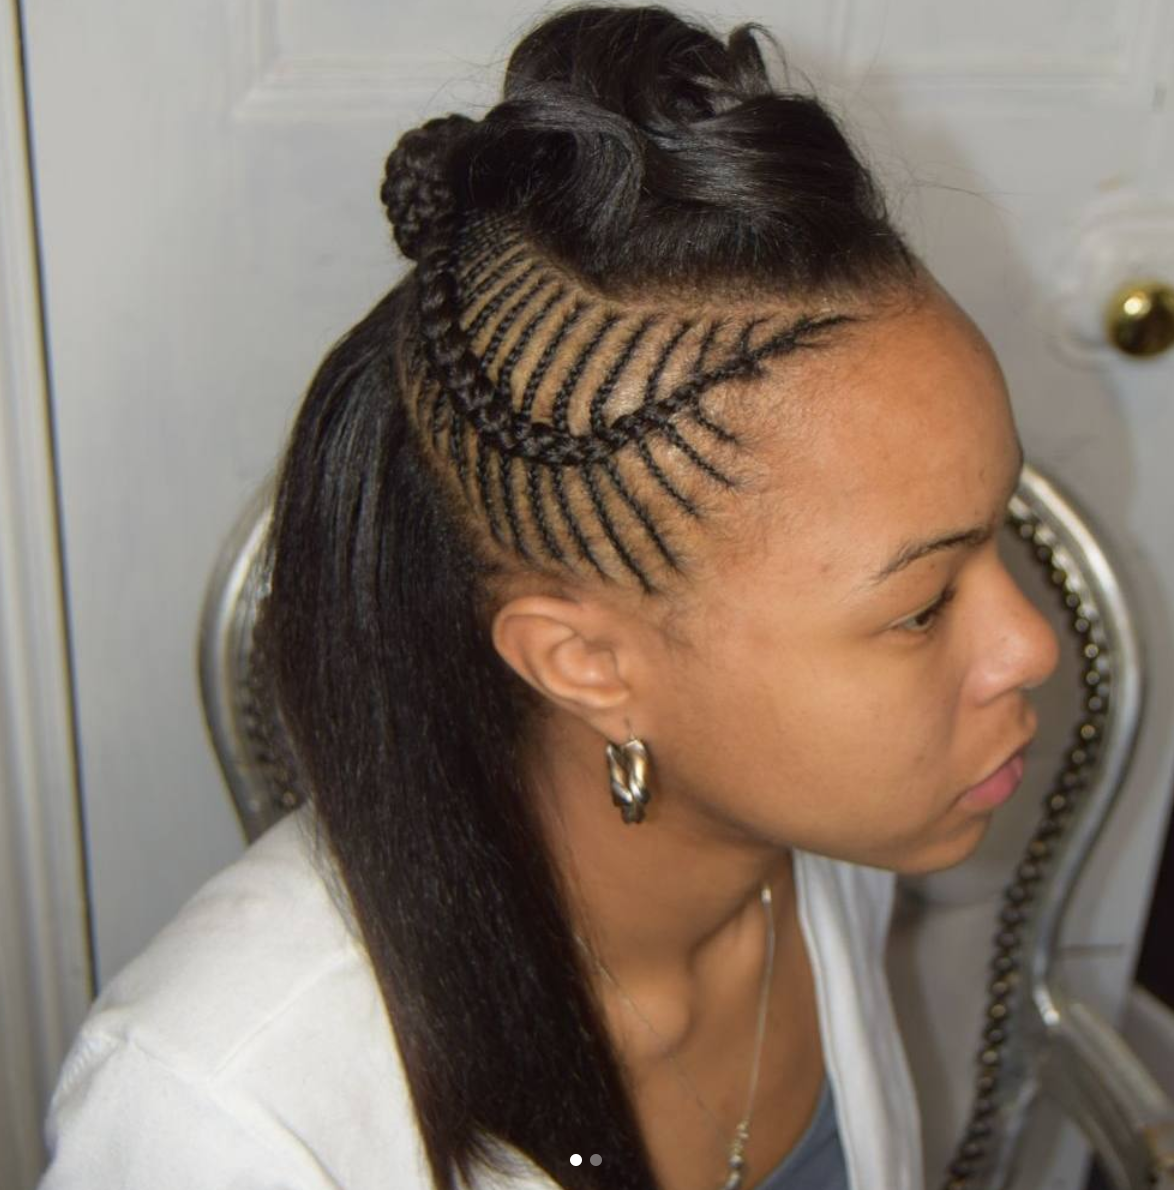 Fish Bone Hairstyle Hairstyles By Unixcode